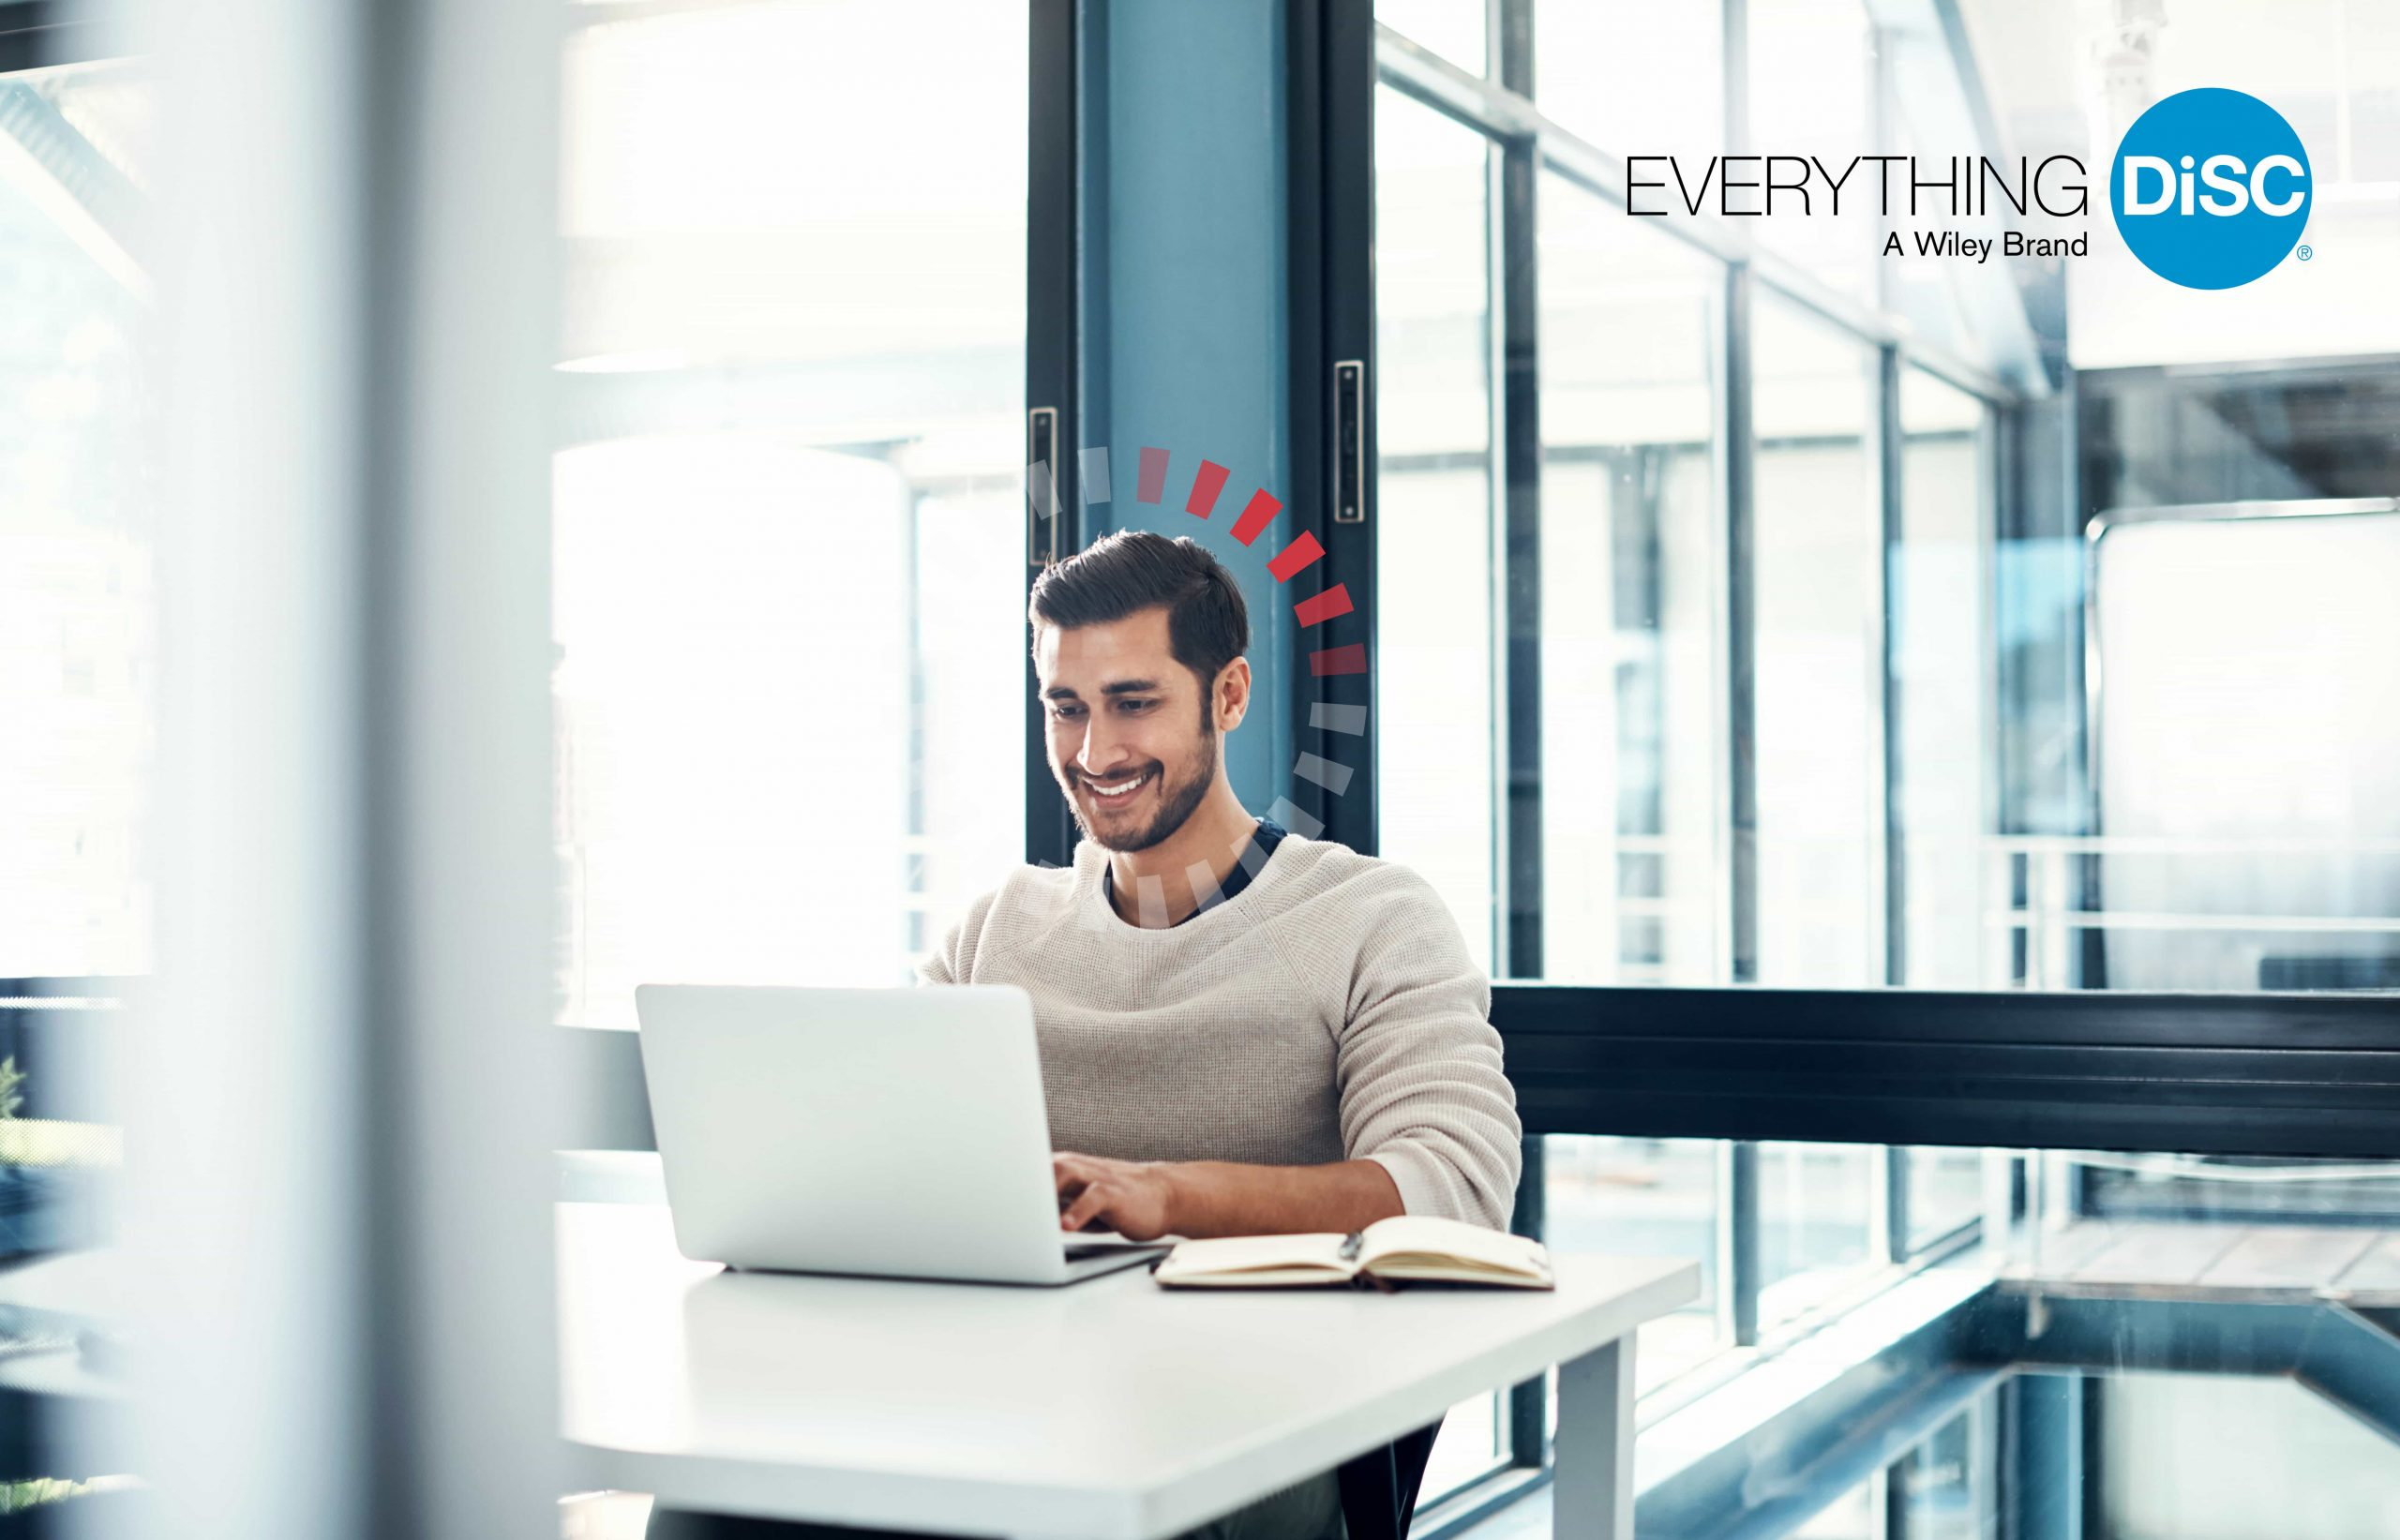 Salesperson sitting at desk looking at computer.